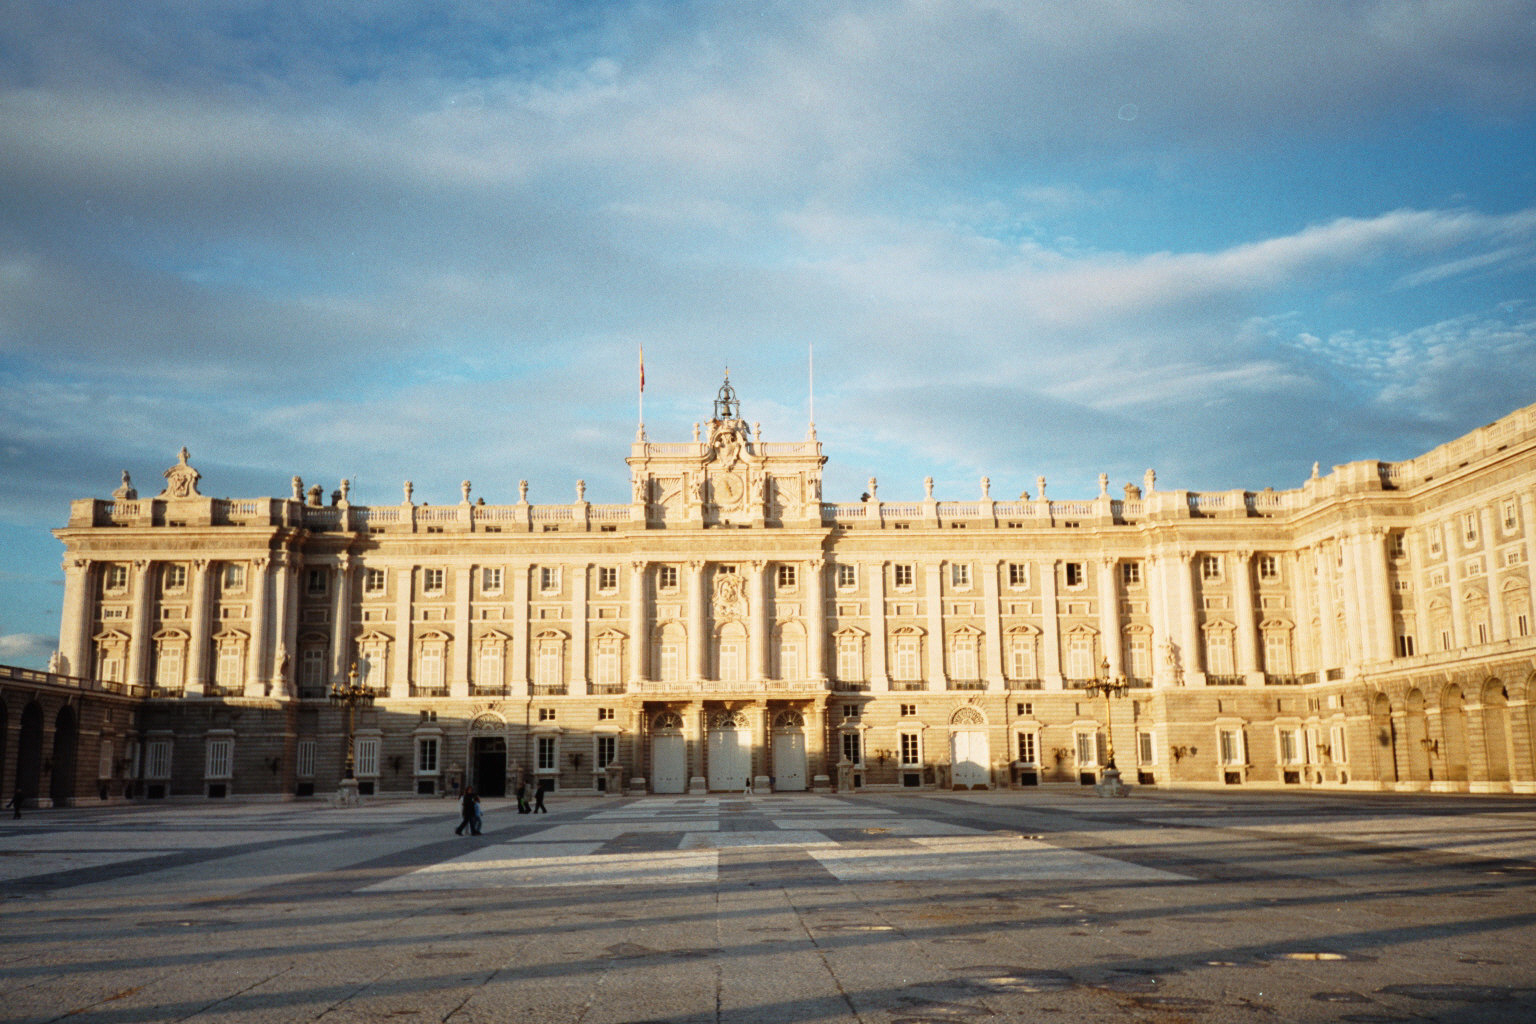 Wallpapers Hd Real Madrid File Palacio Real Madrid 4 Jpg Wikimedia Commons